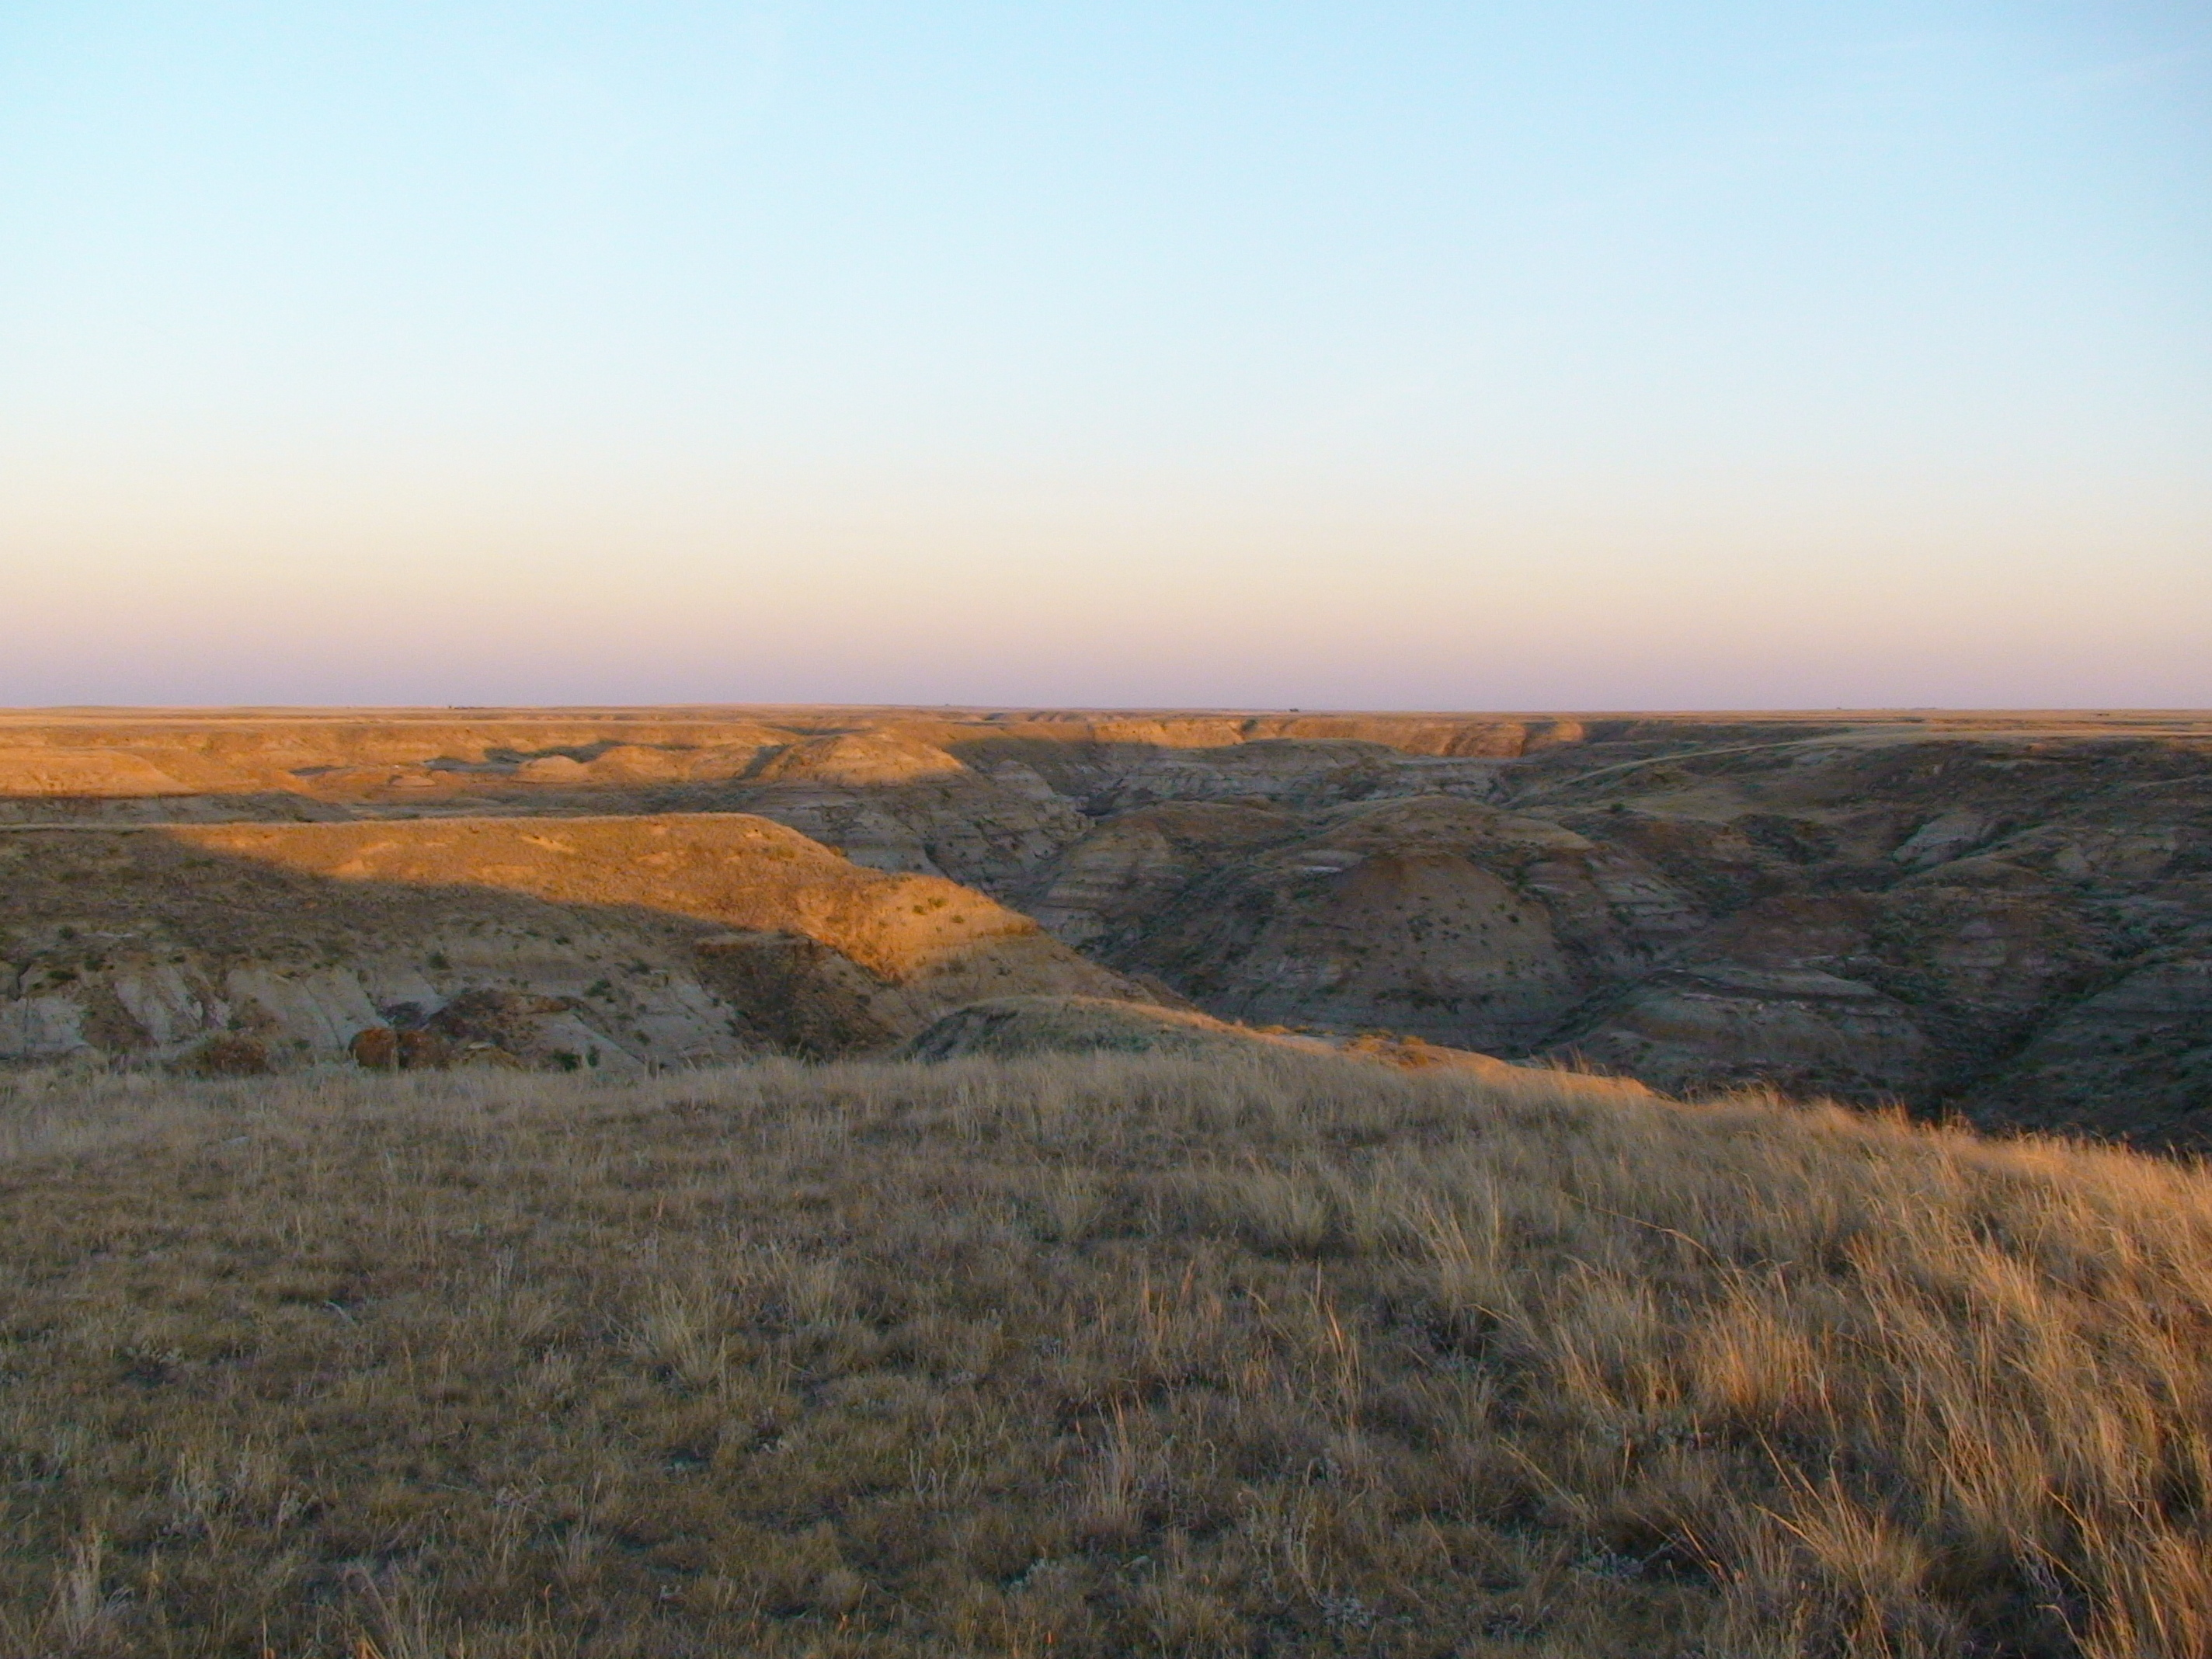 Looking into the coulee at sunset.